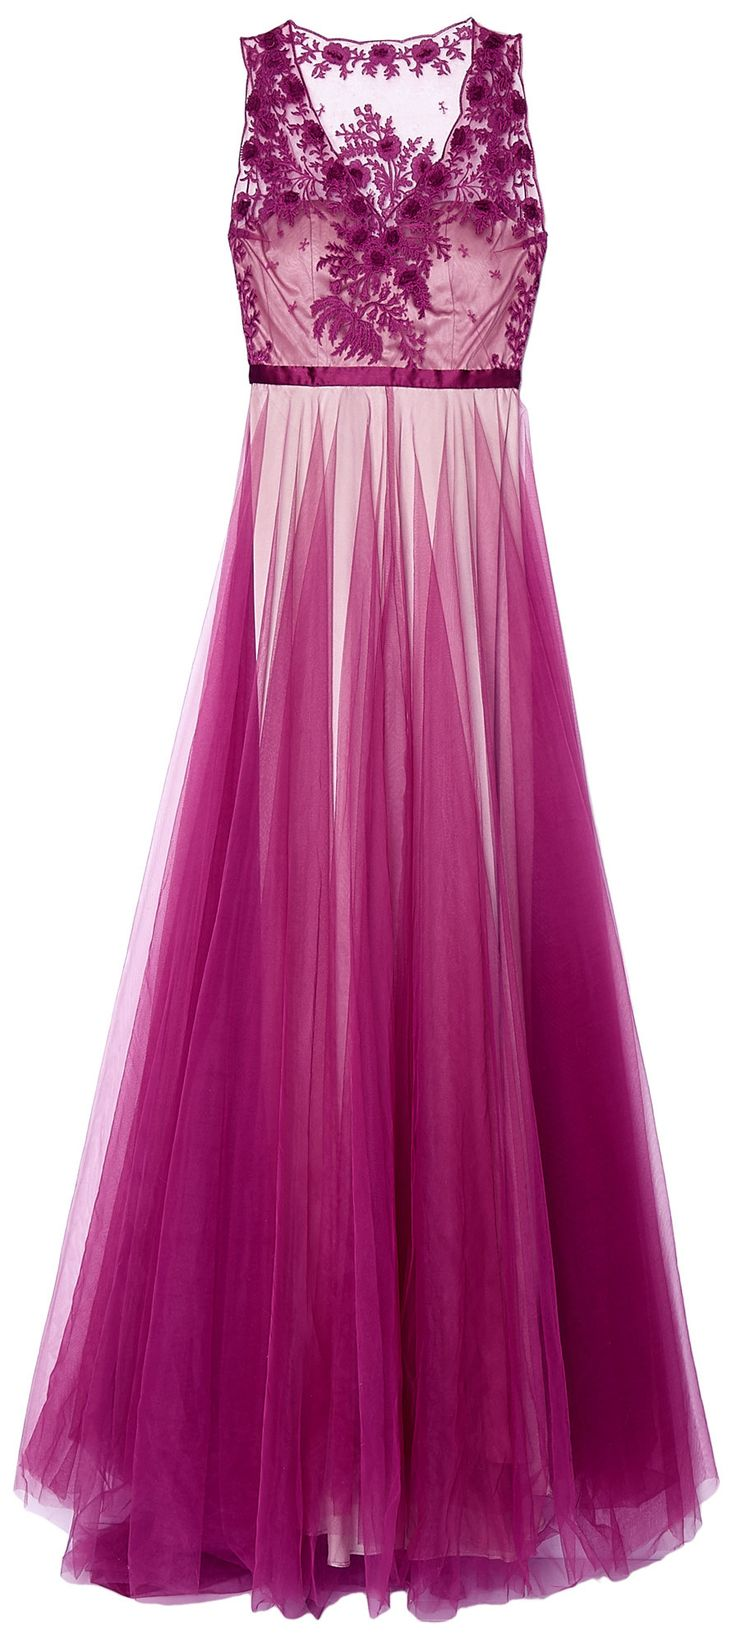 Catherine Deane Purple Magenta Prarie Embroidered Gown. For my beauty sleep :)